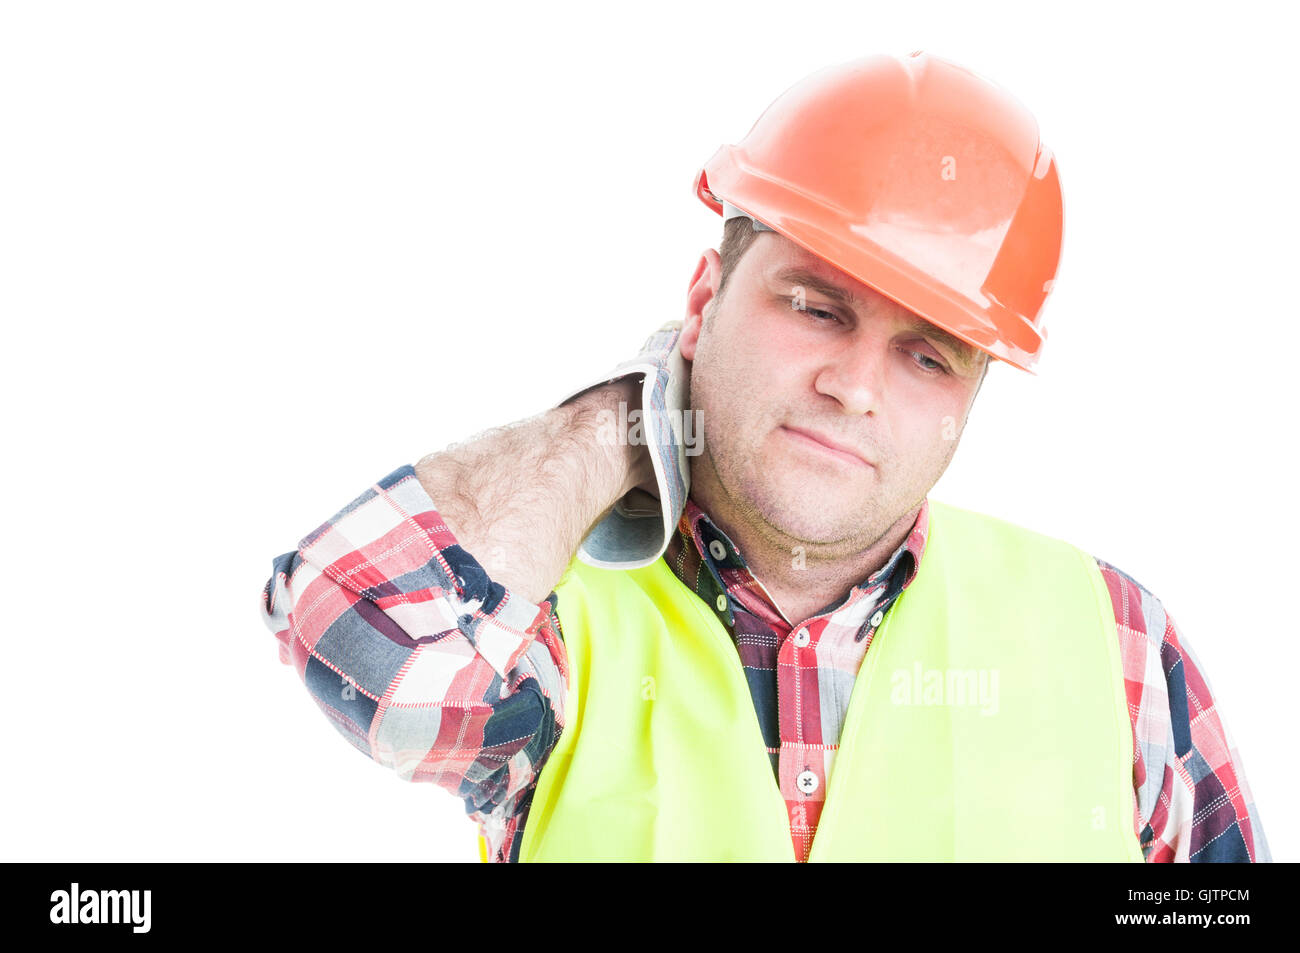 Construction worker looking tired or tense and having neck pain isolated on white studio background - Stock Image